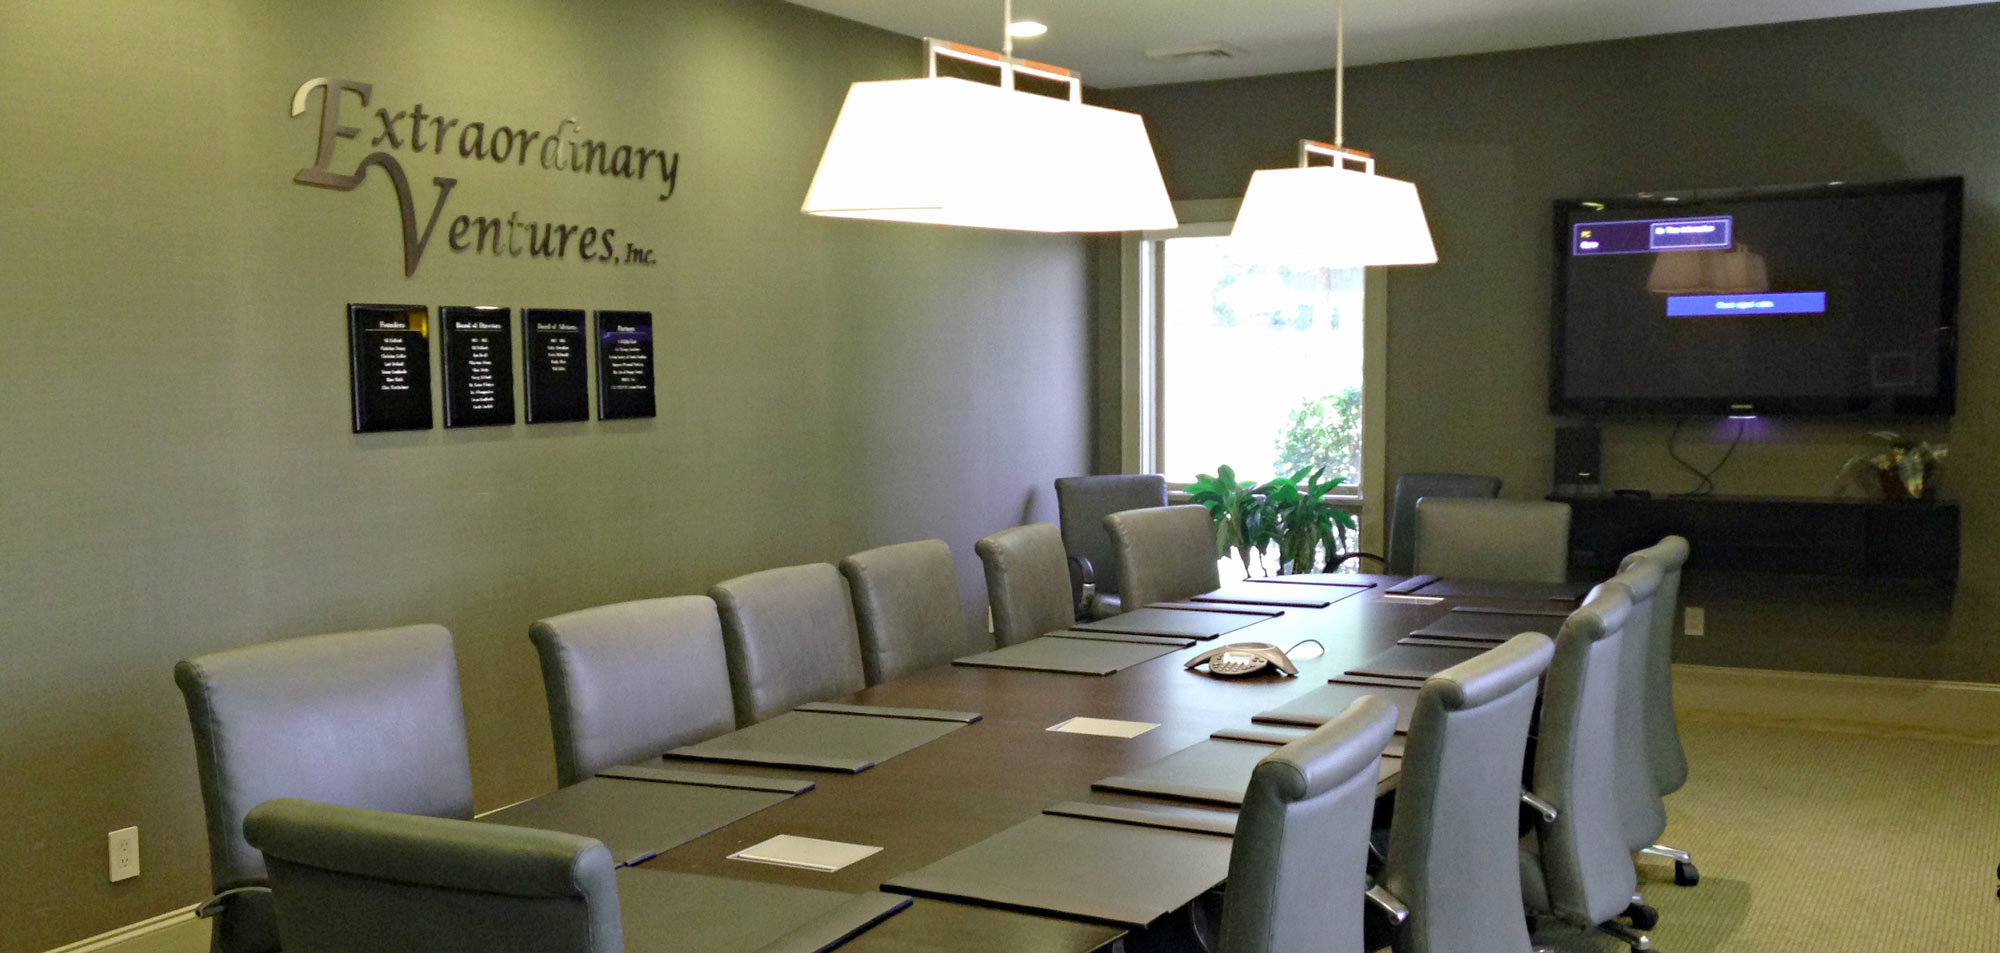 The Board Room Meeting Space